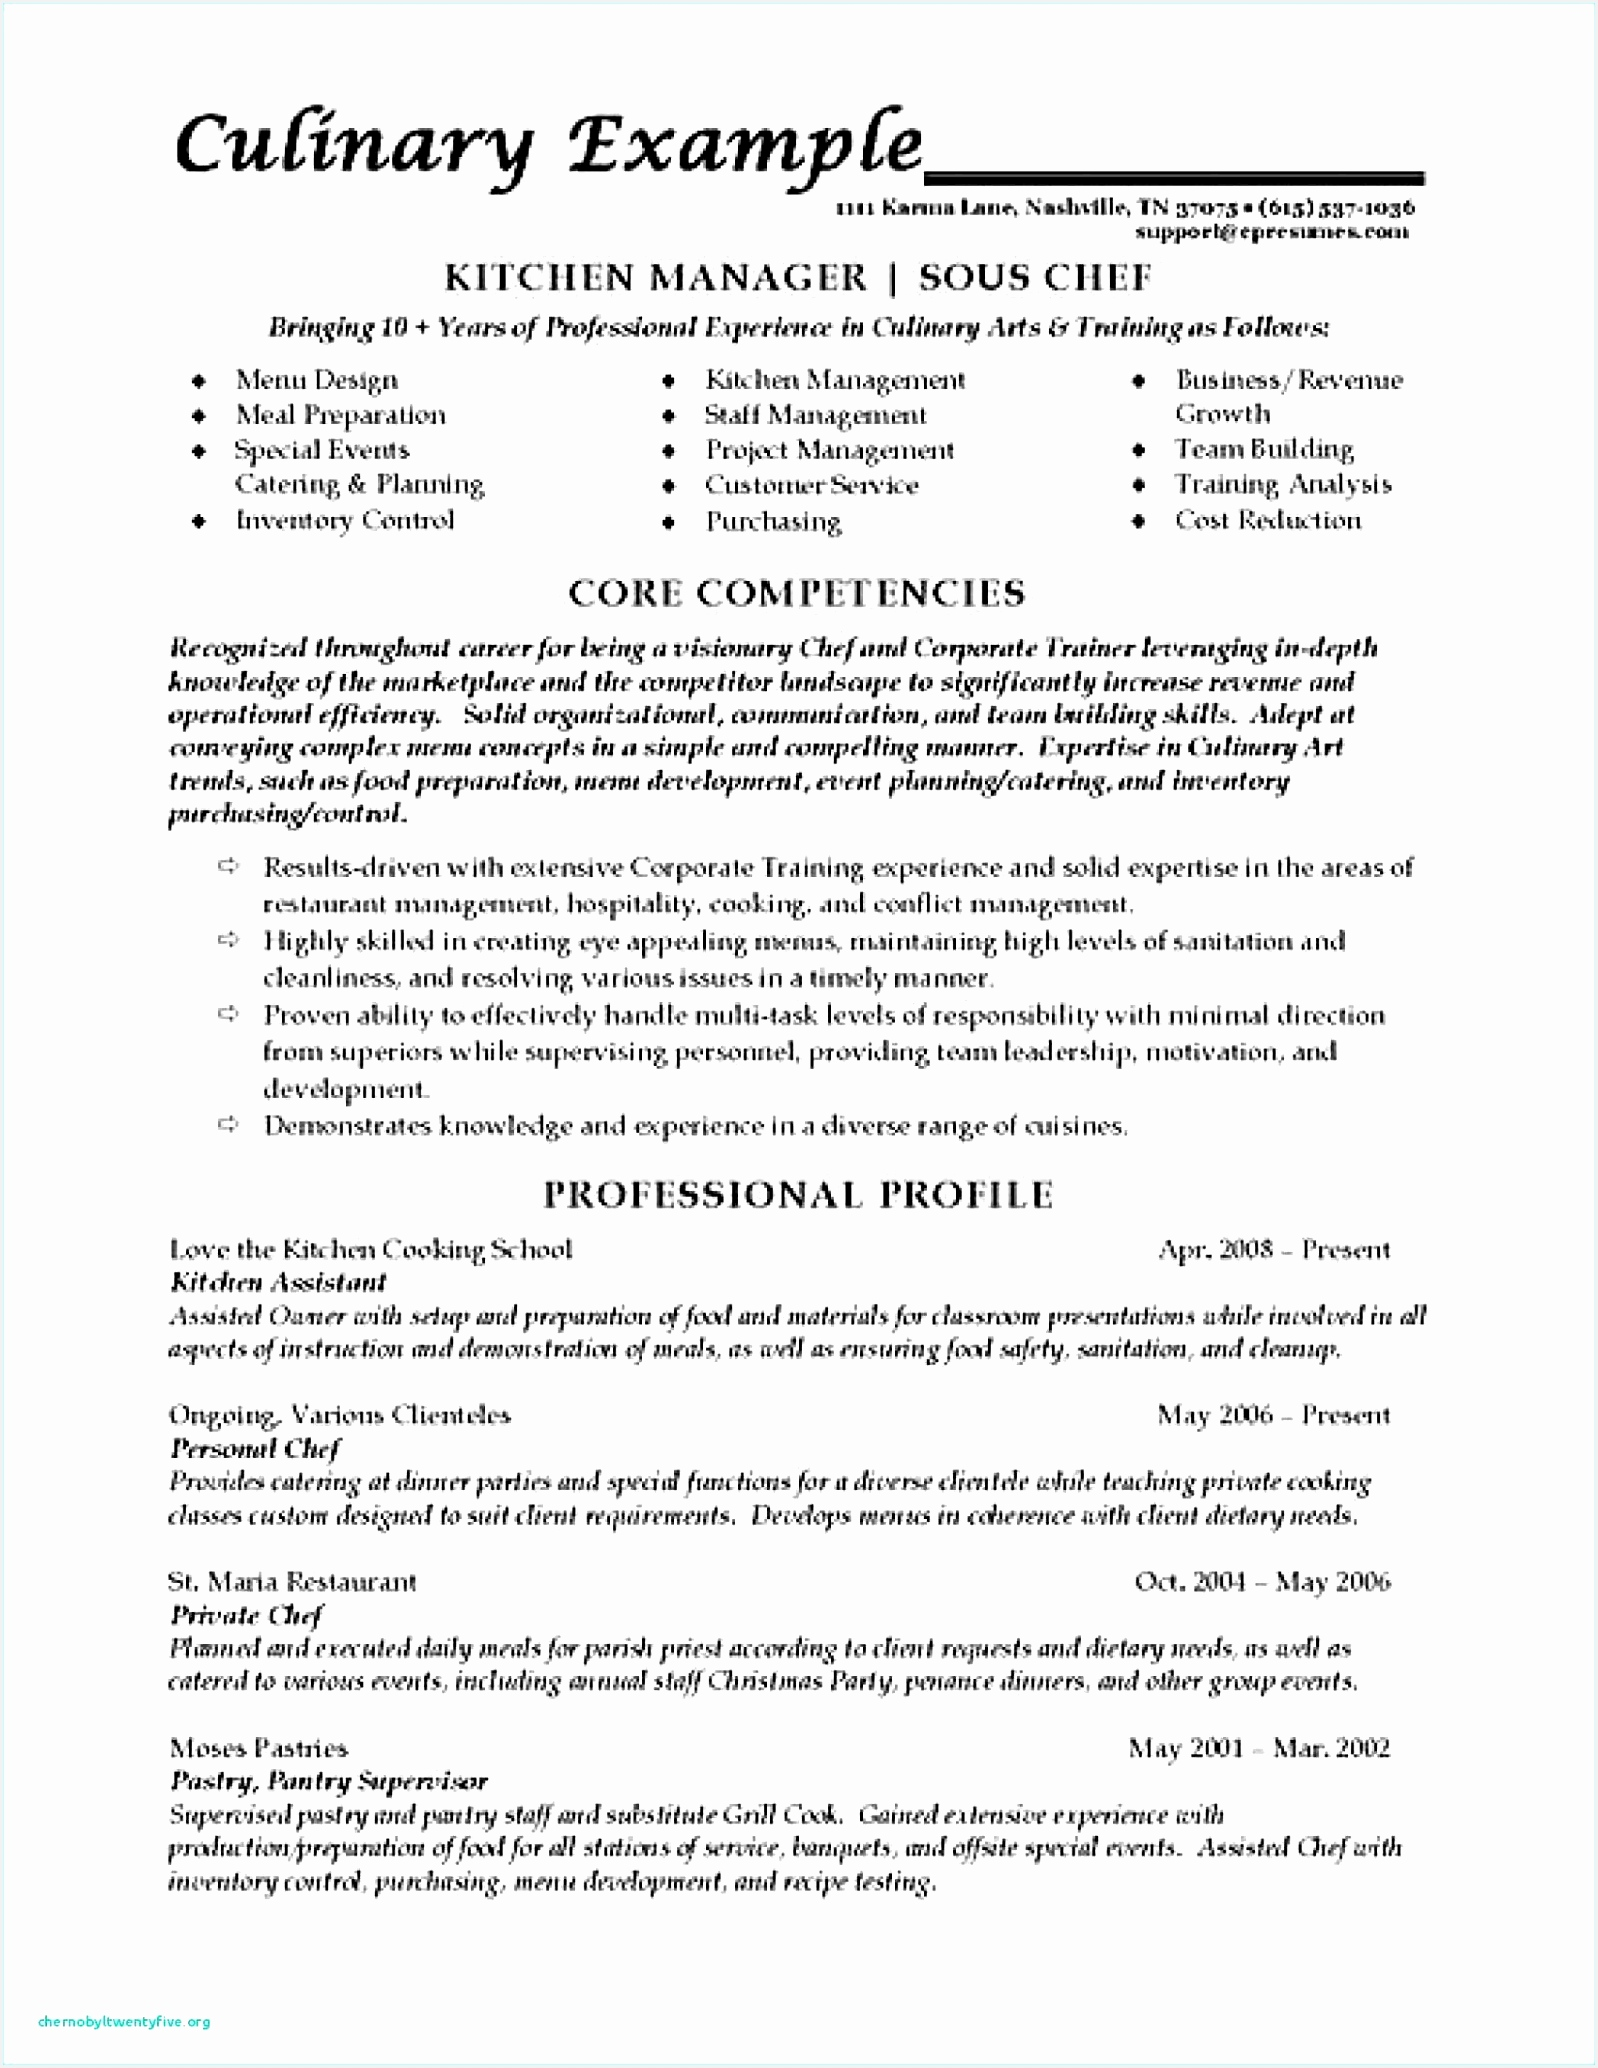 7 sample resume for pastry chef gdqwte